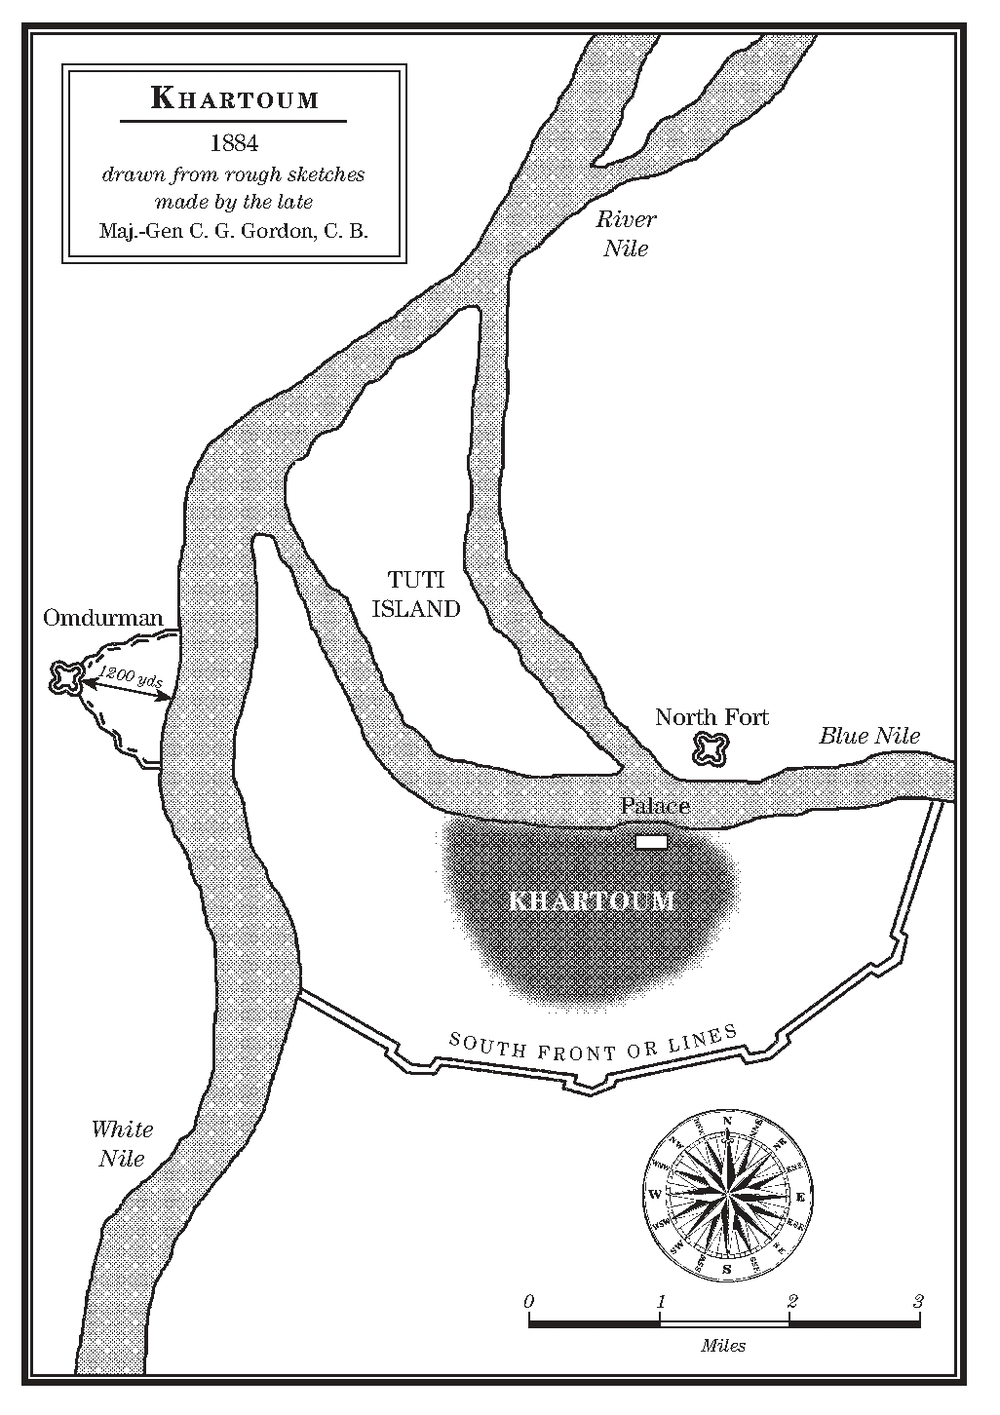 Key settings in my novel are the Governor's Palace on the south side of the Blue Nile and the North Fort on the opposite bank, to the east of Tuti Island. To the south you can see the defensive walls that Gordon attempted to strengthen, and on the west bank the fort of Omdurman where the main Mahdist force was encamped and where Kitchener fourteen years later exacted his terrible revenge for the murder of Gordon.